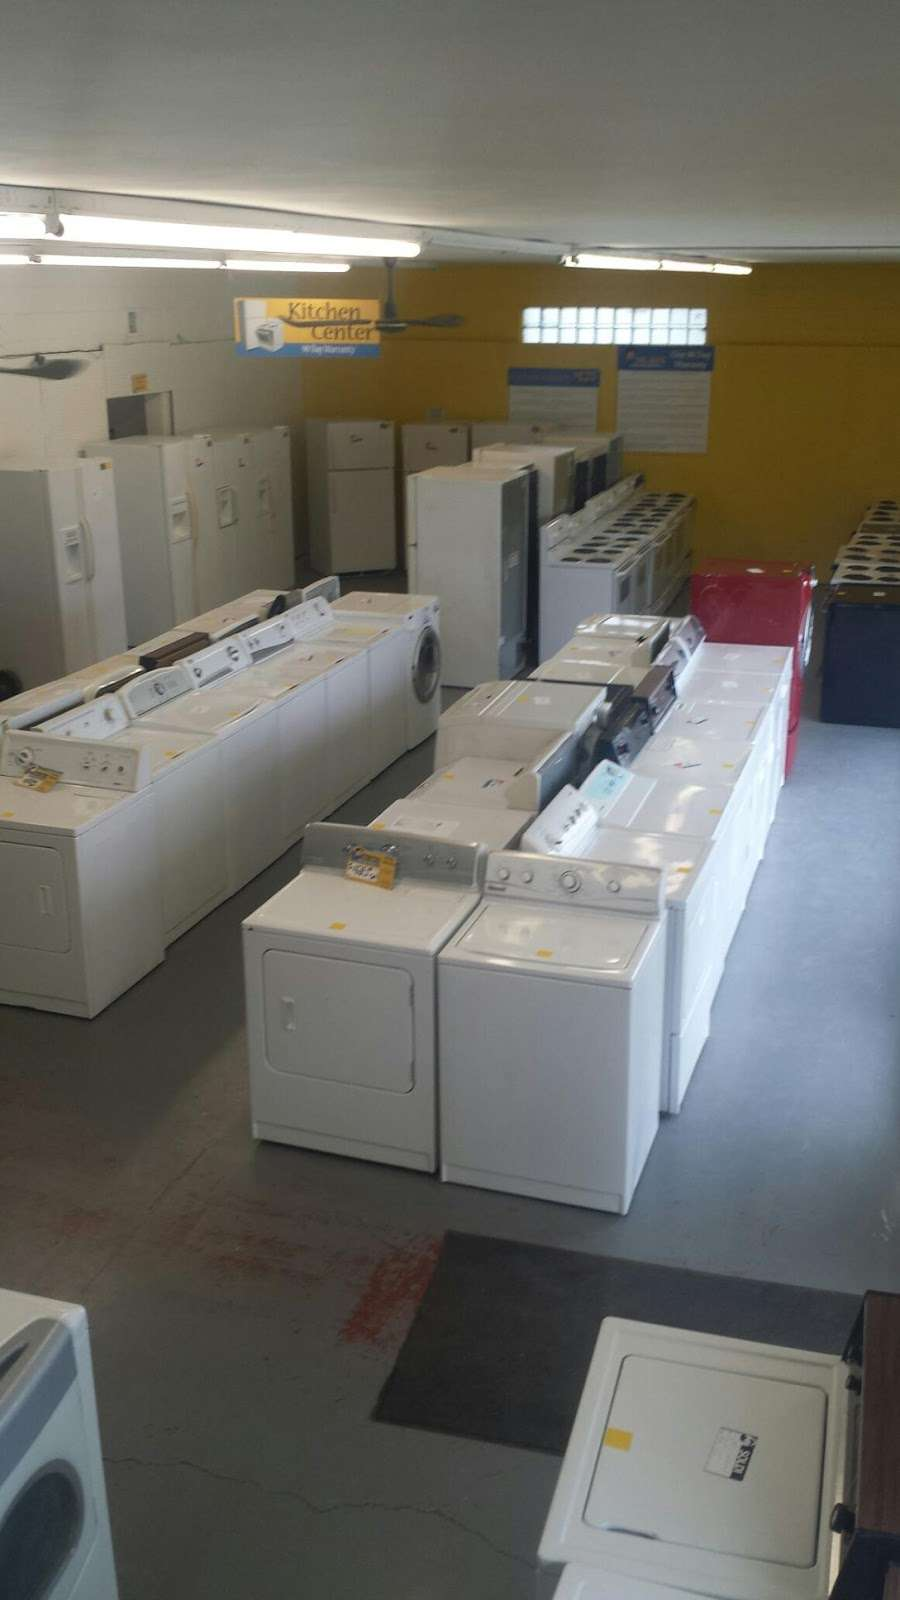 Big Jons Used Appliances - home goods store    Photo 5 of 9   Address: 2678 E Main St, Plainfield, IN 46168, USA   Phone: (317) 268-6880